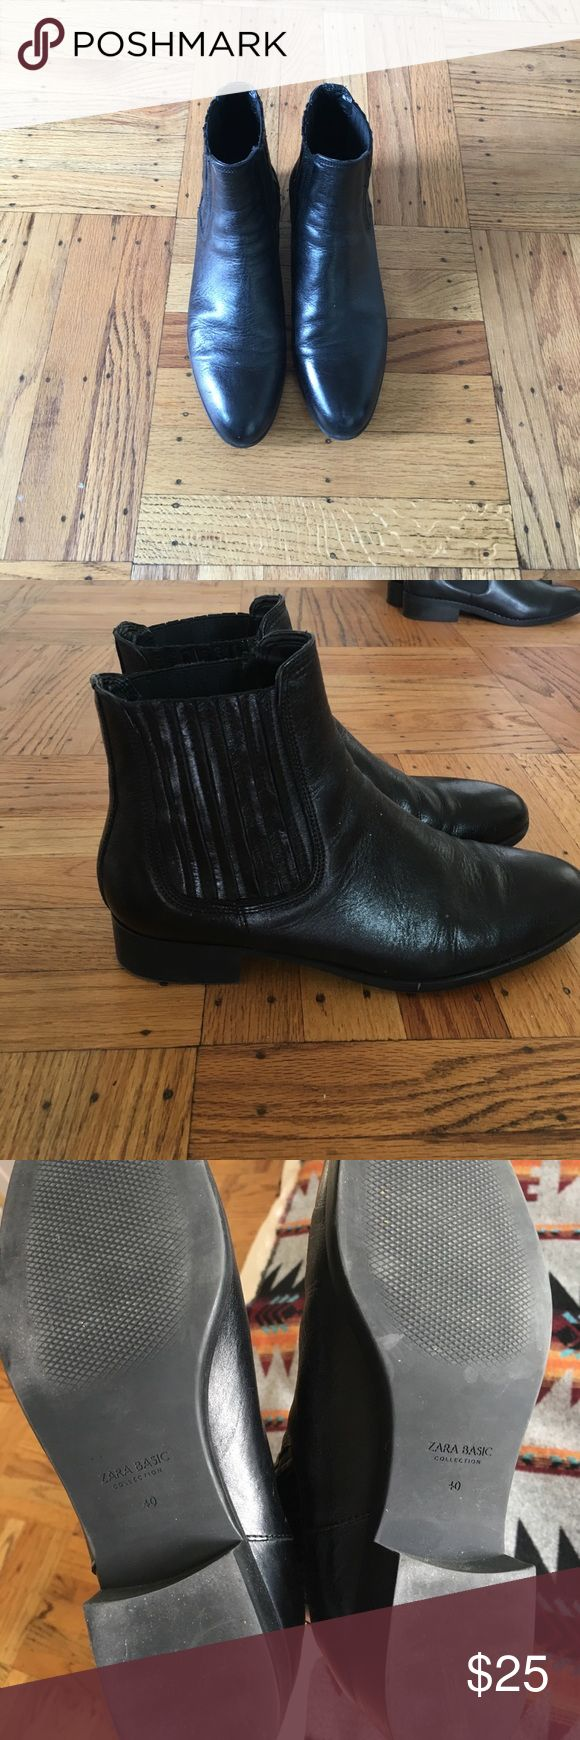 Zara - Black Leather - Chelsea Boots - size 40-US9 Reposh! Just a tad big on me. Great condition. From the Zara Basic collection. Zara Shoes Ankle Boots & Booties